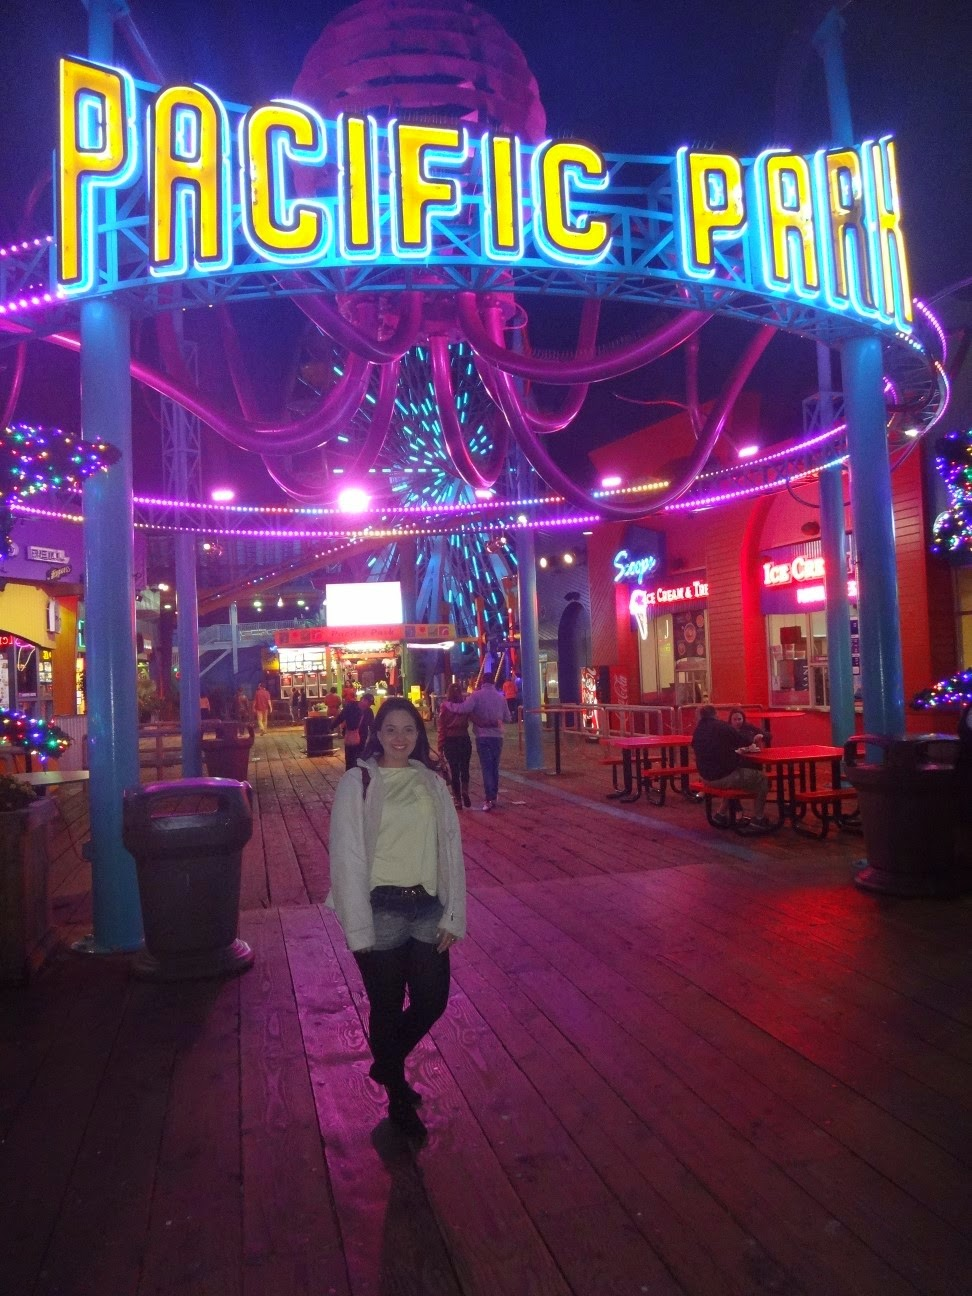 pacific park - pier de santa monica - los angeles - california'